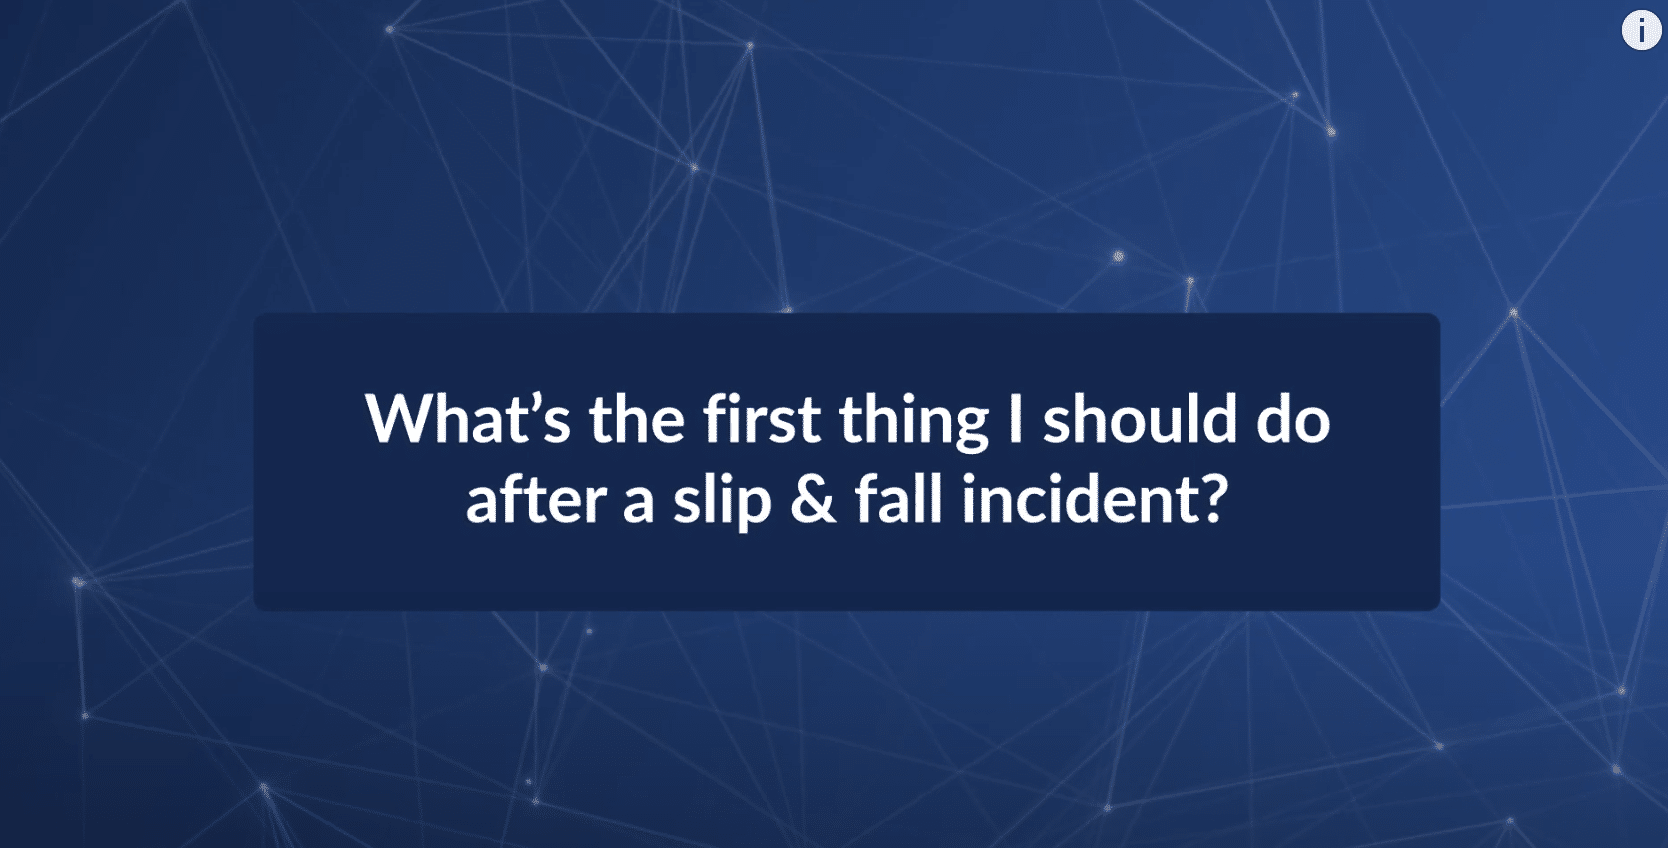 What's the First Thing I Should Do After a Slip & Fall Incident?